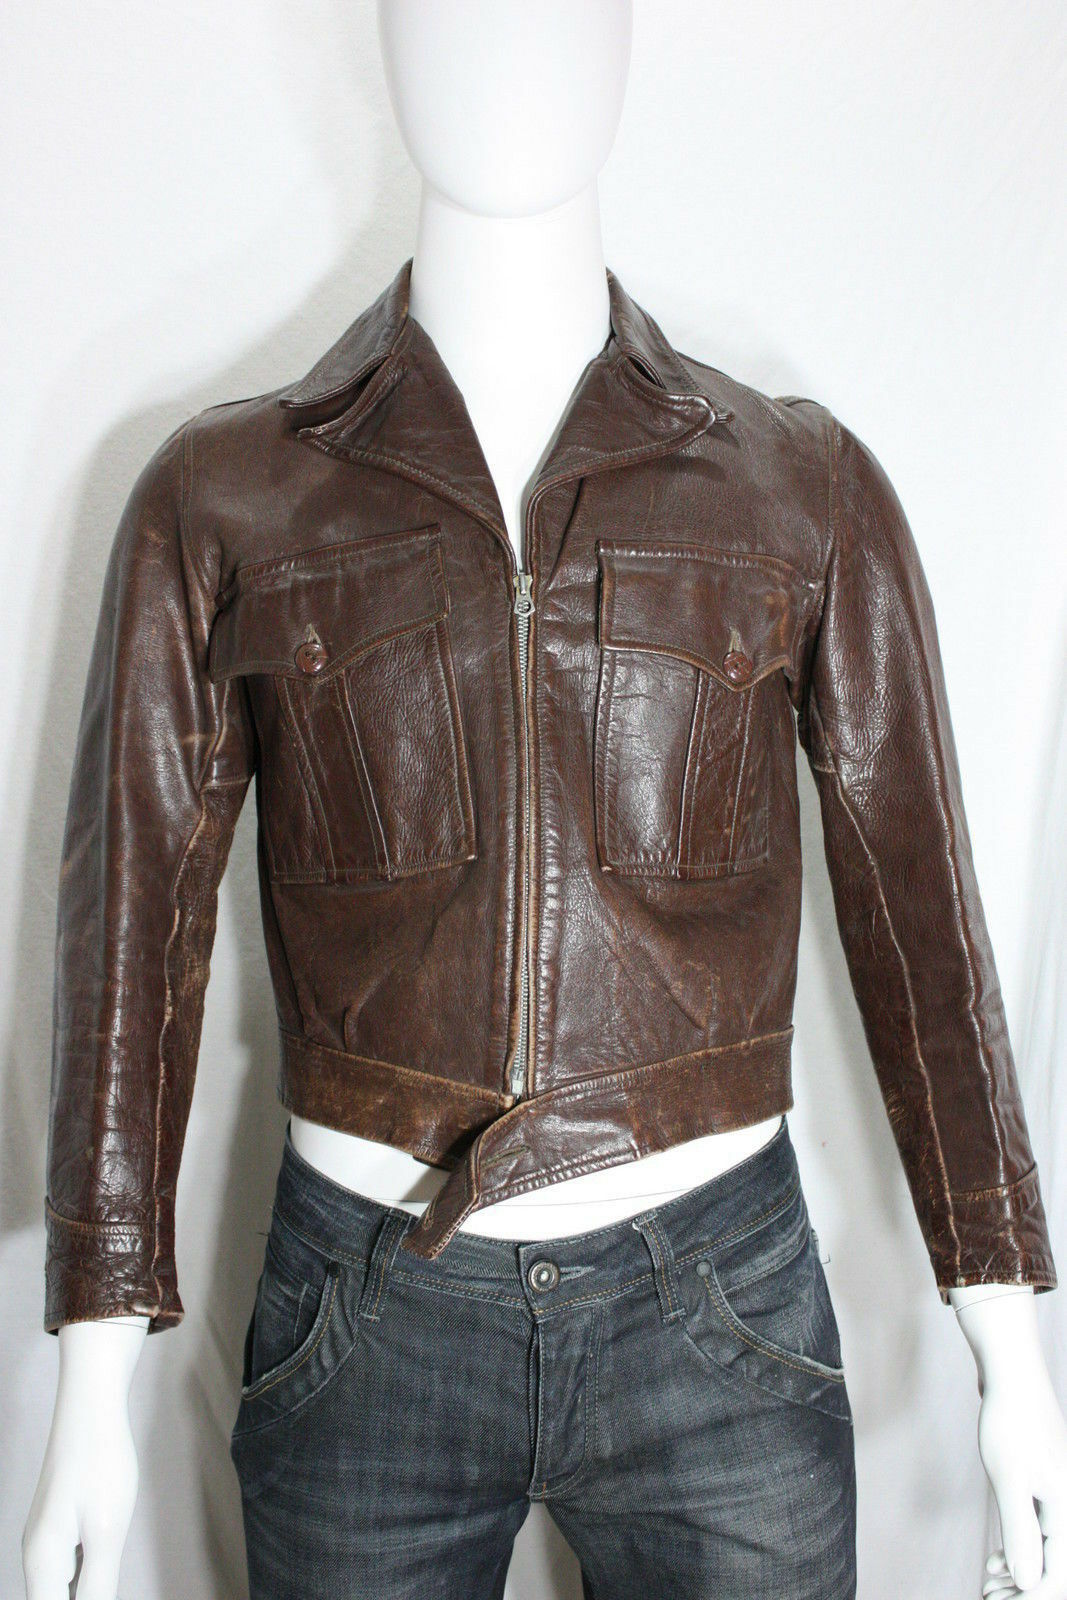 Small leather jackets